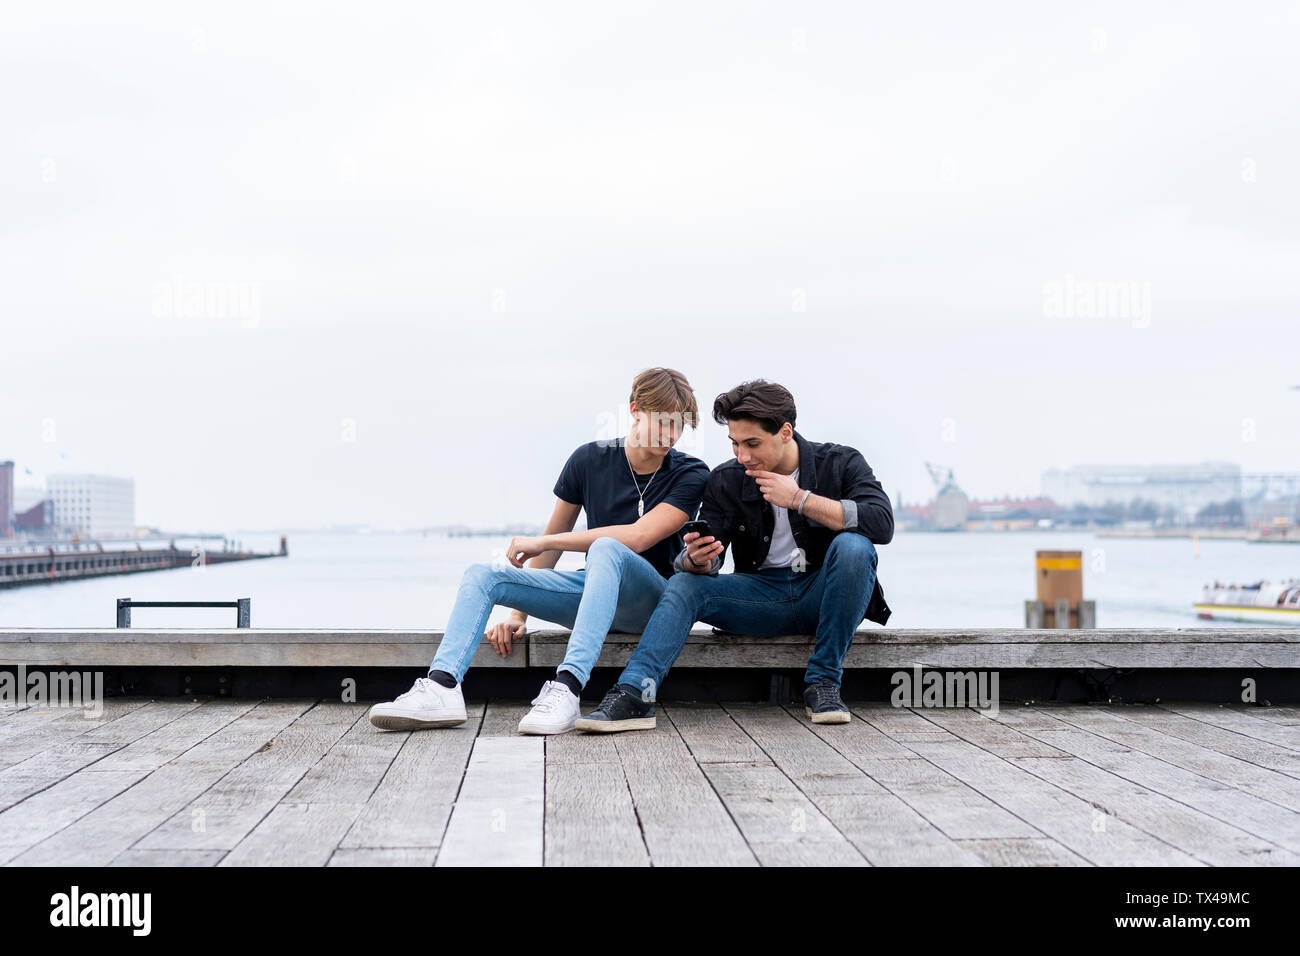 Denmark, Copenhagen, two young men sitting at the waterfront using cell phone - Stock Image